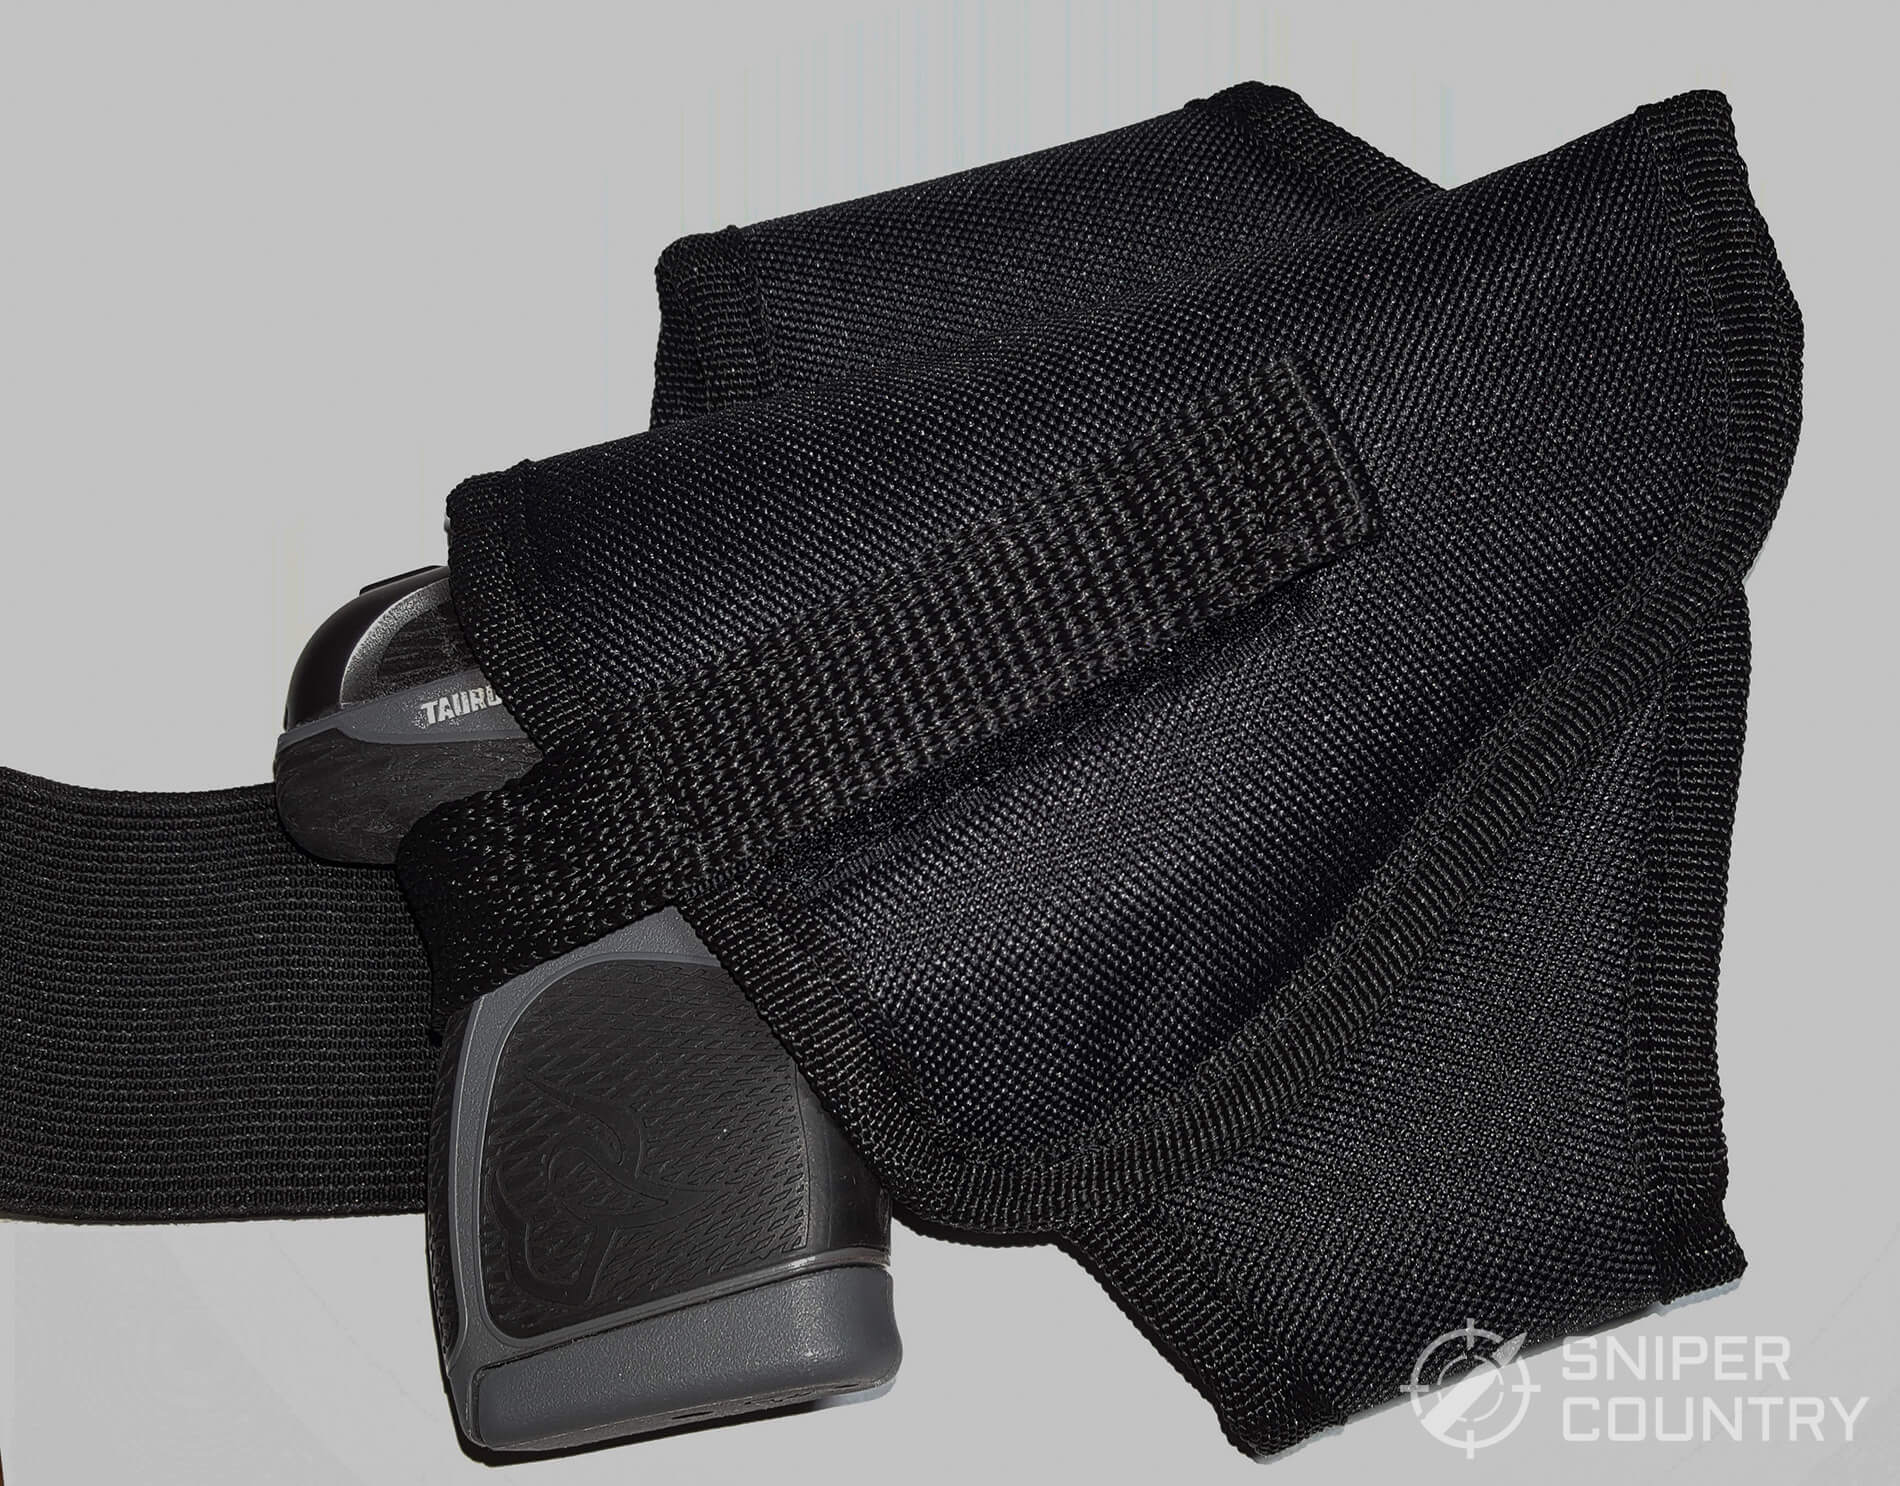 Houston GH 68 B AKH Ankle Holster with Taurus Spectrum 2